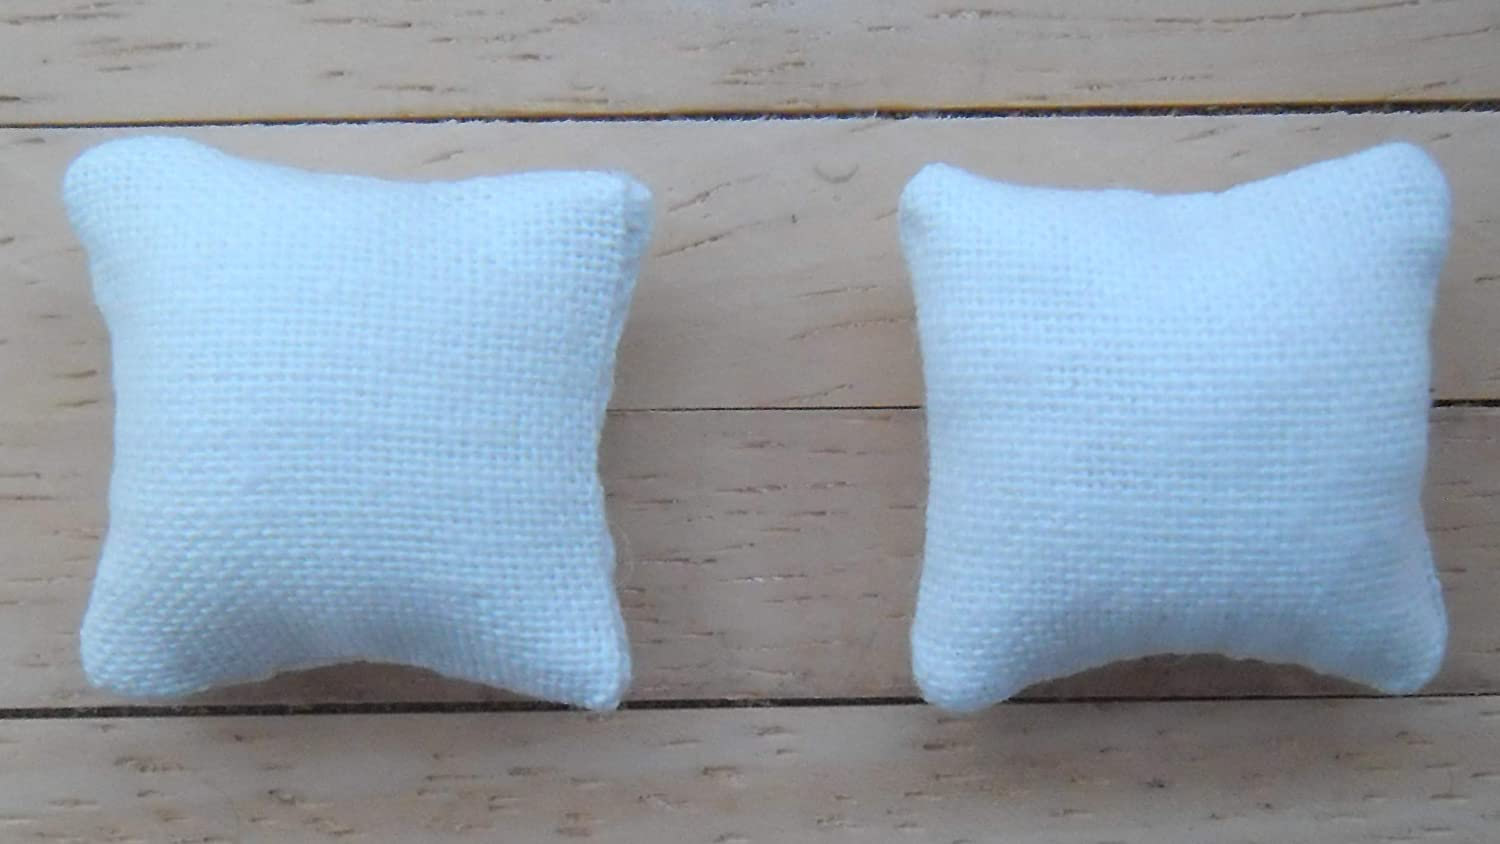 1//24th Scale Dolls House Printed Fabric Cushions in Pale Blue